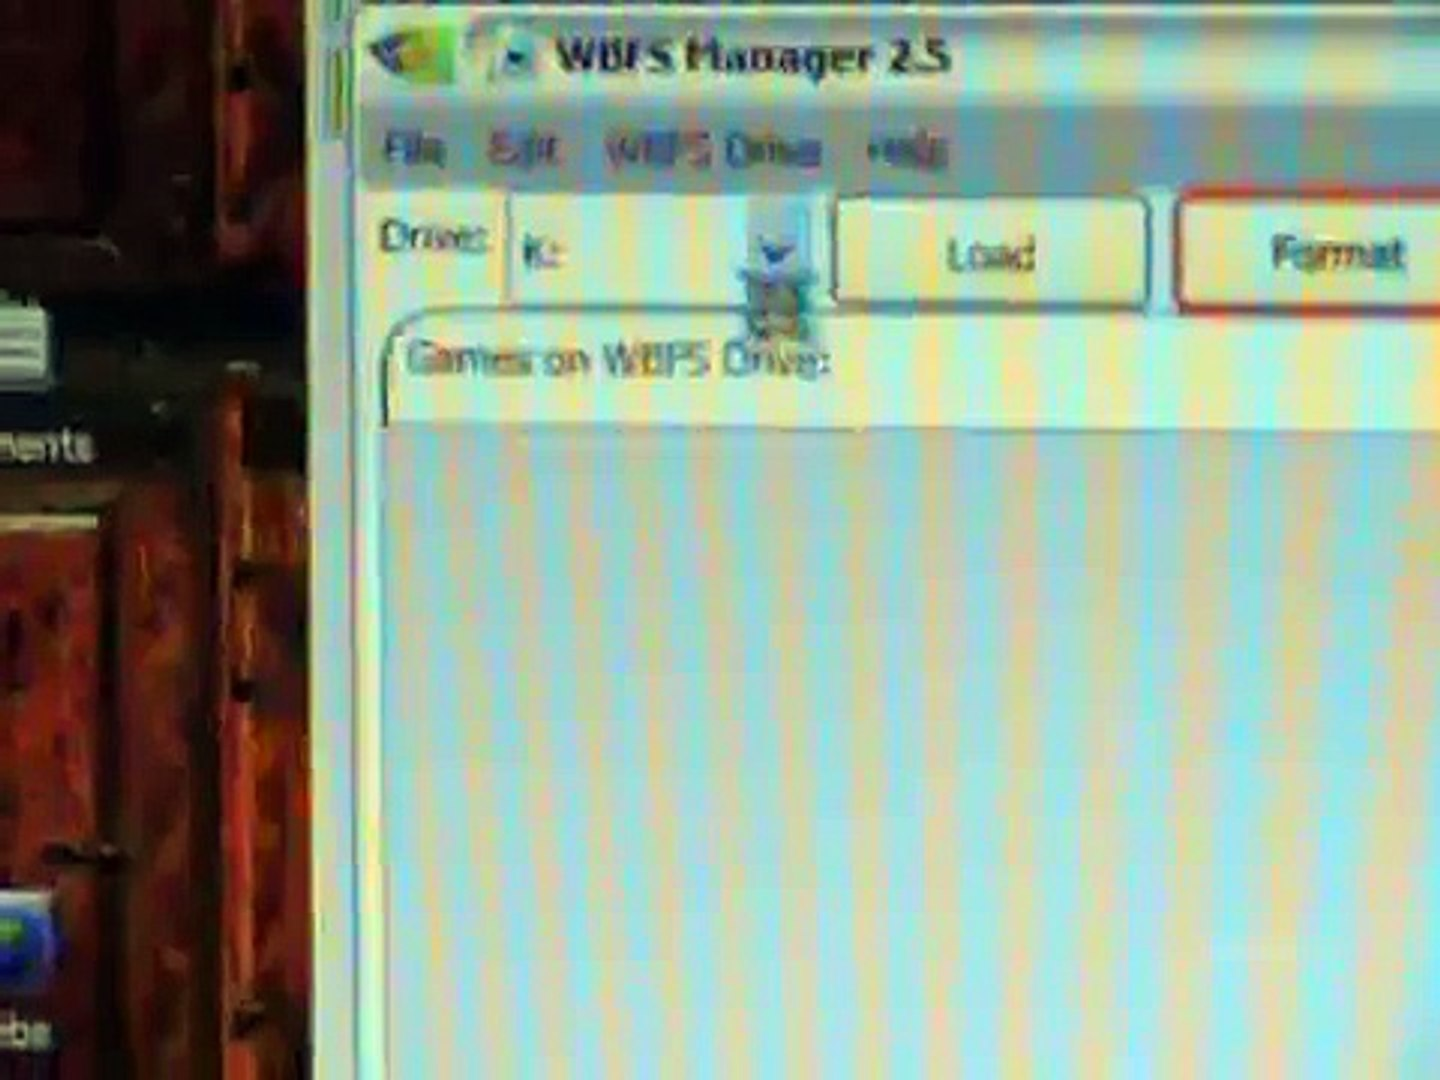 Wii USB loader WBFS game install tutorial!